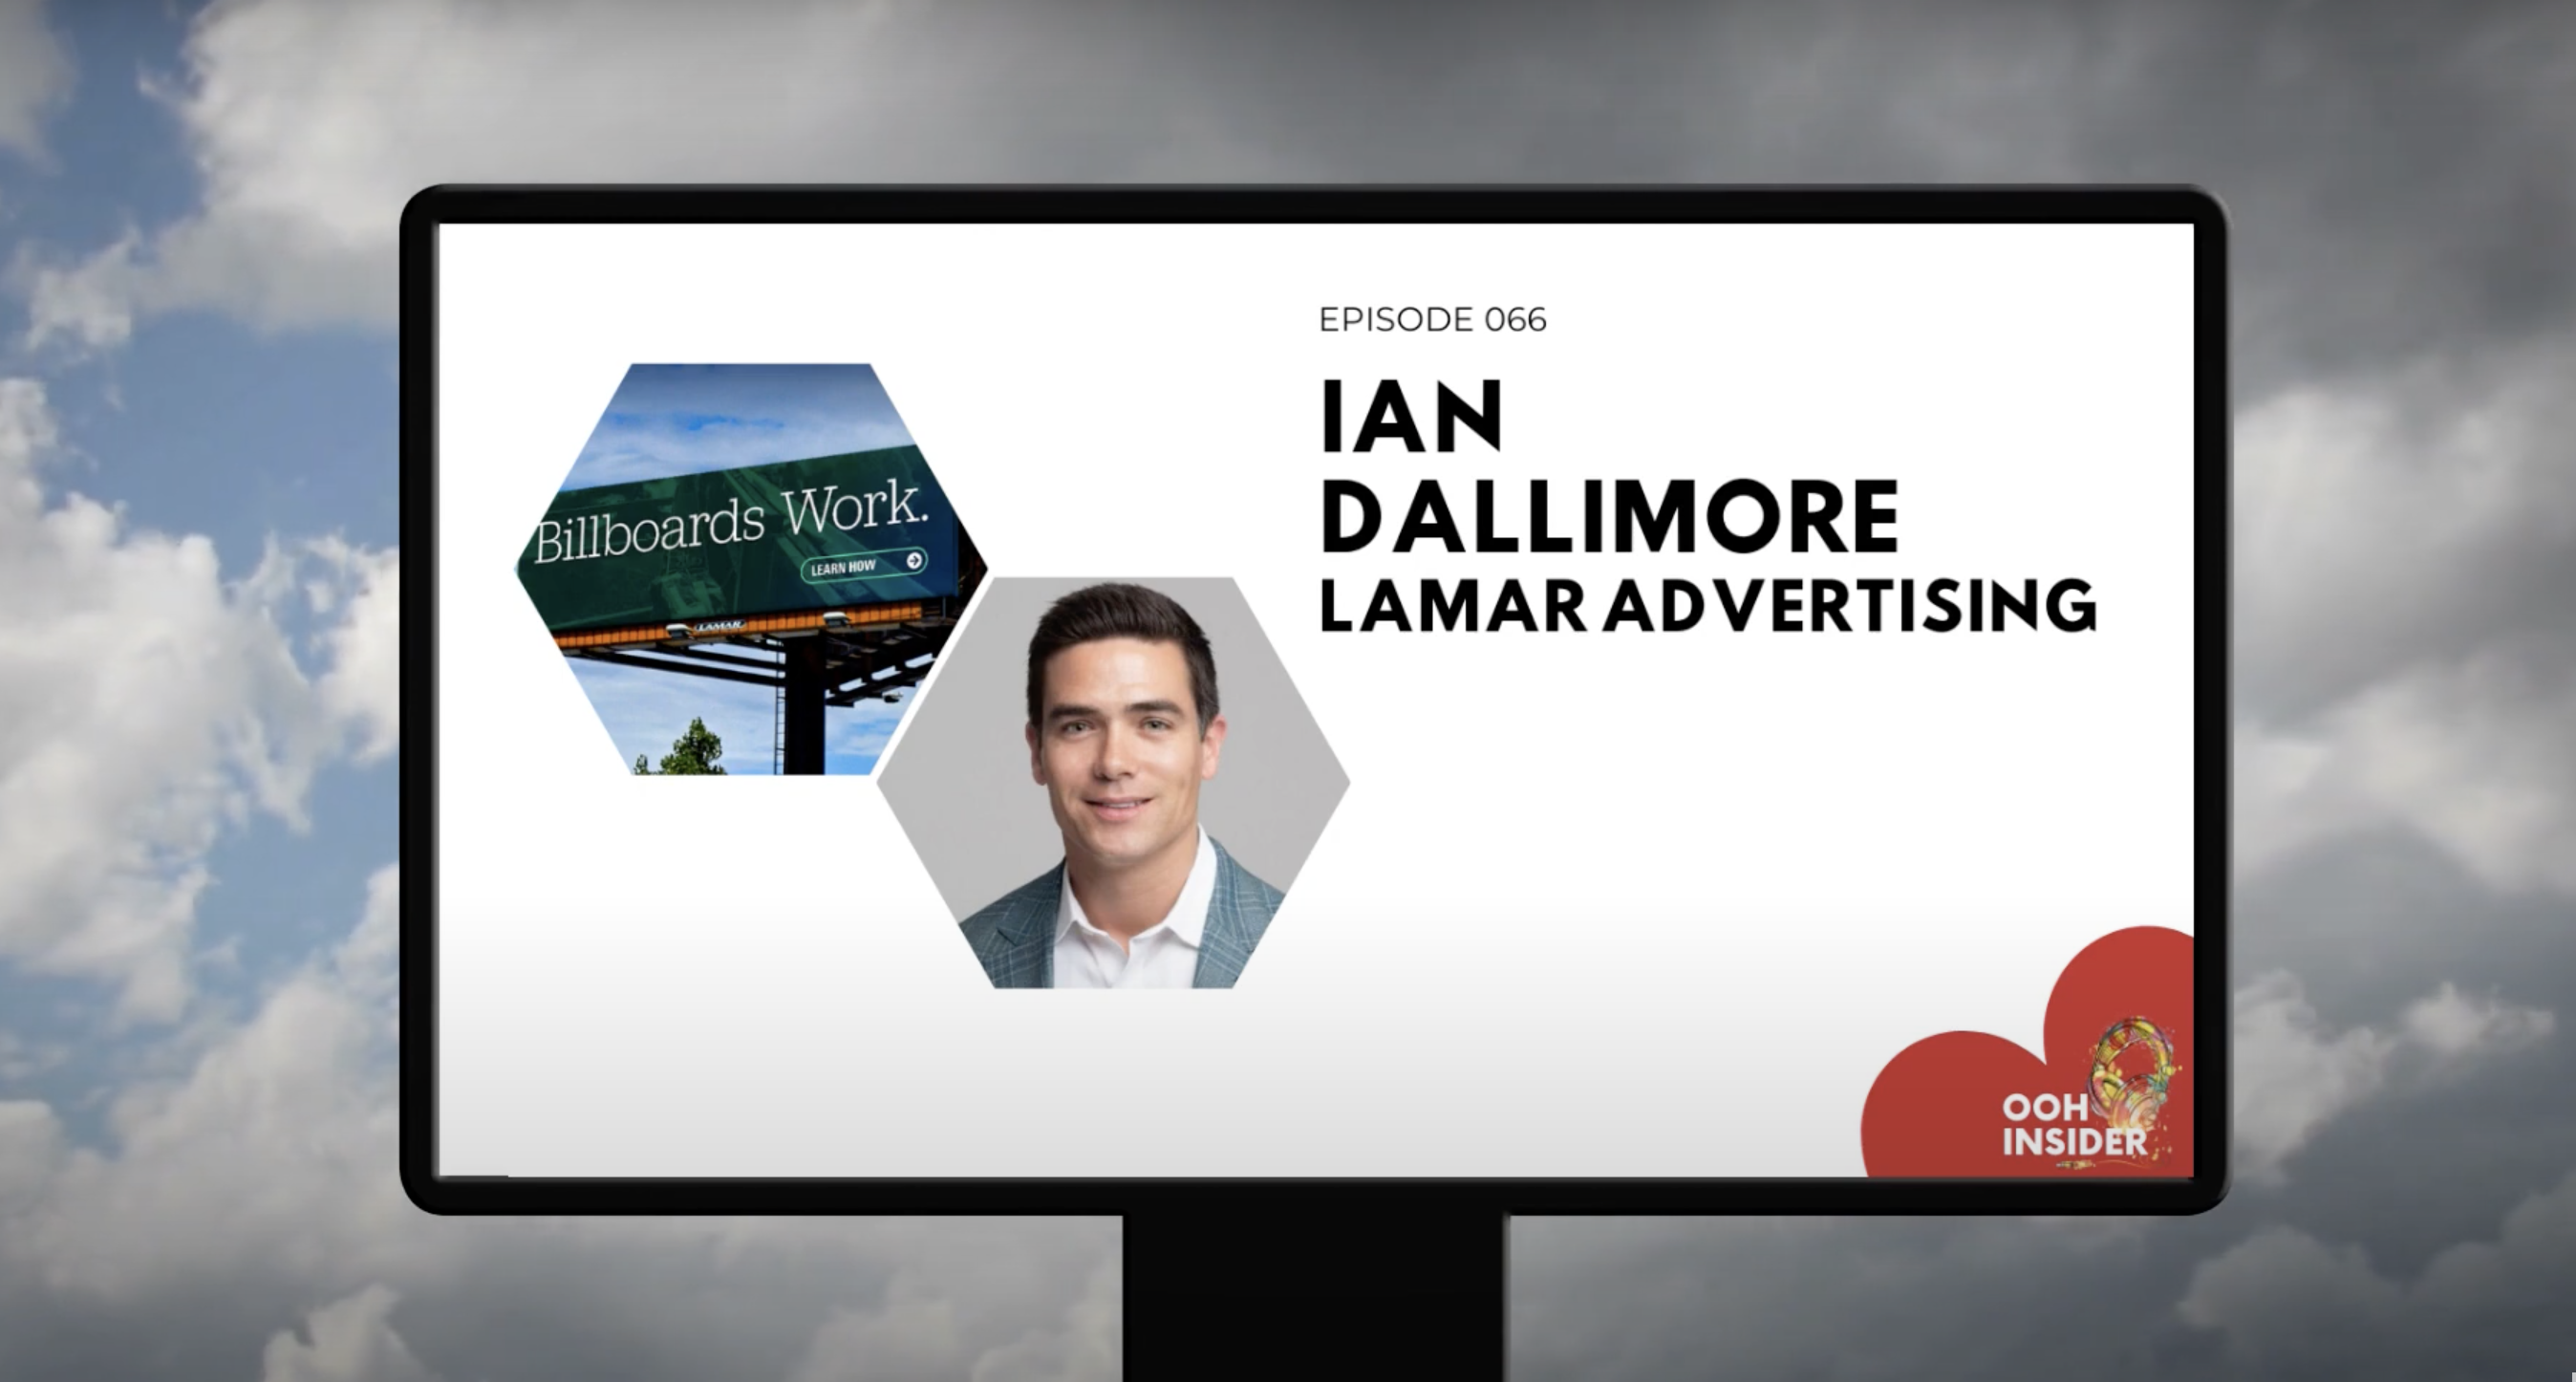 OOH Insider Podcast Ep 66 - How will data privacy and consent impact OOH? | Ian Dallimore